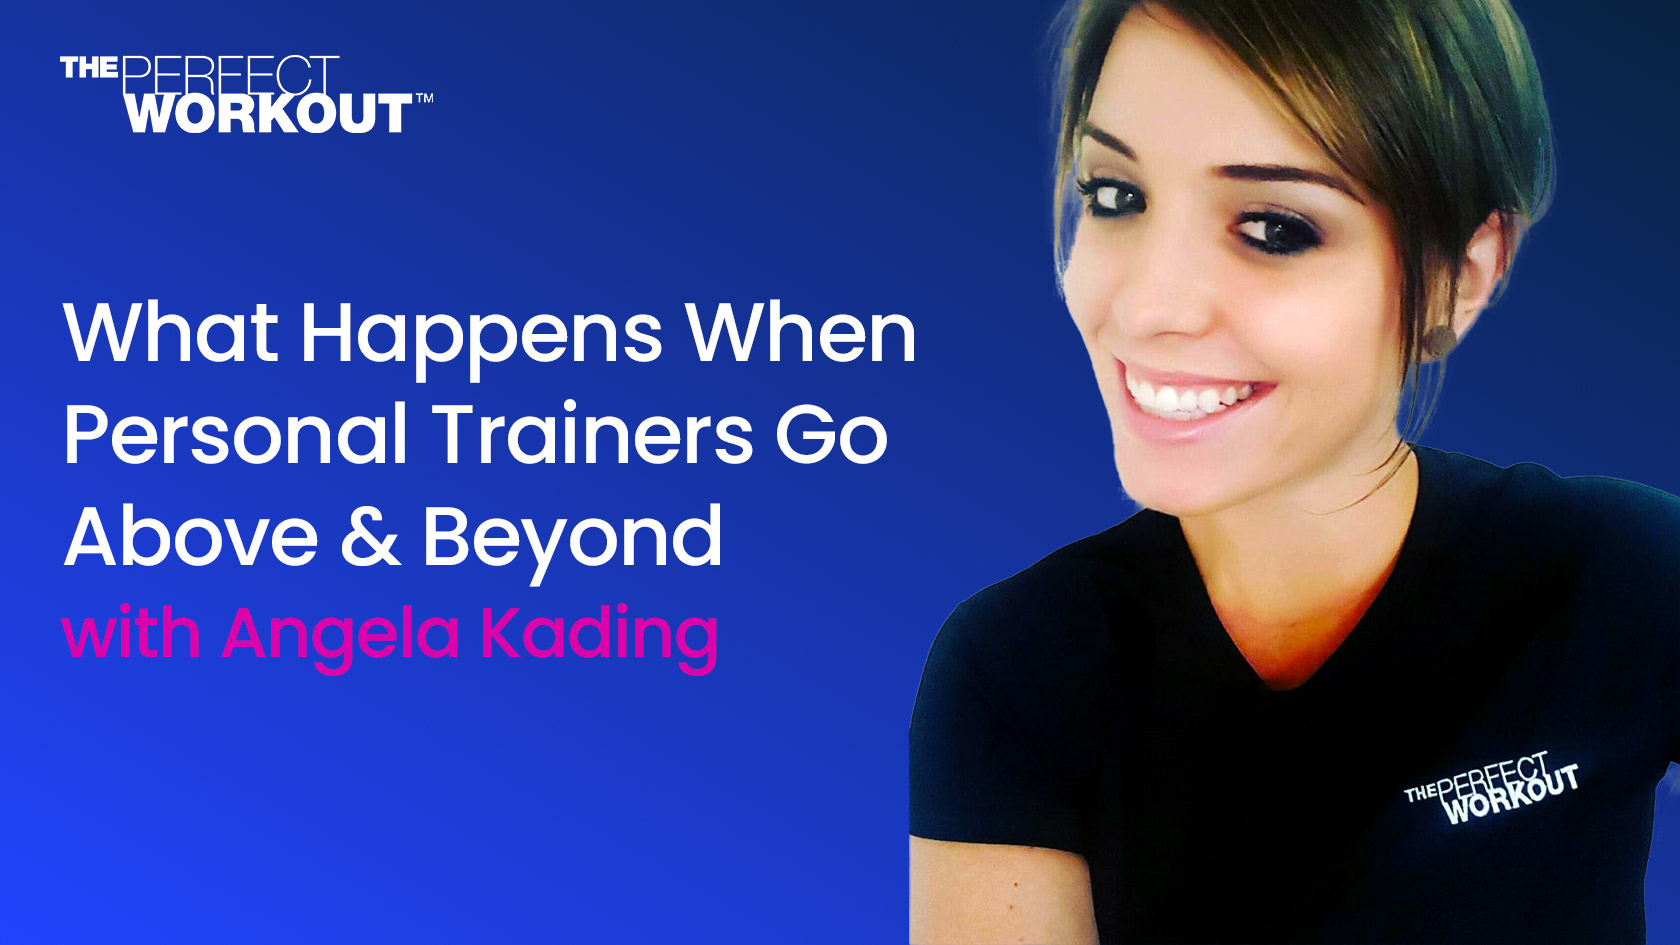 What Happens When Personal Trainers Go Above & Beyond